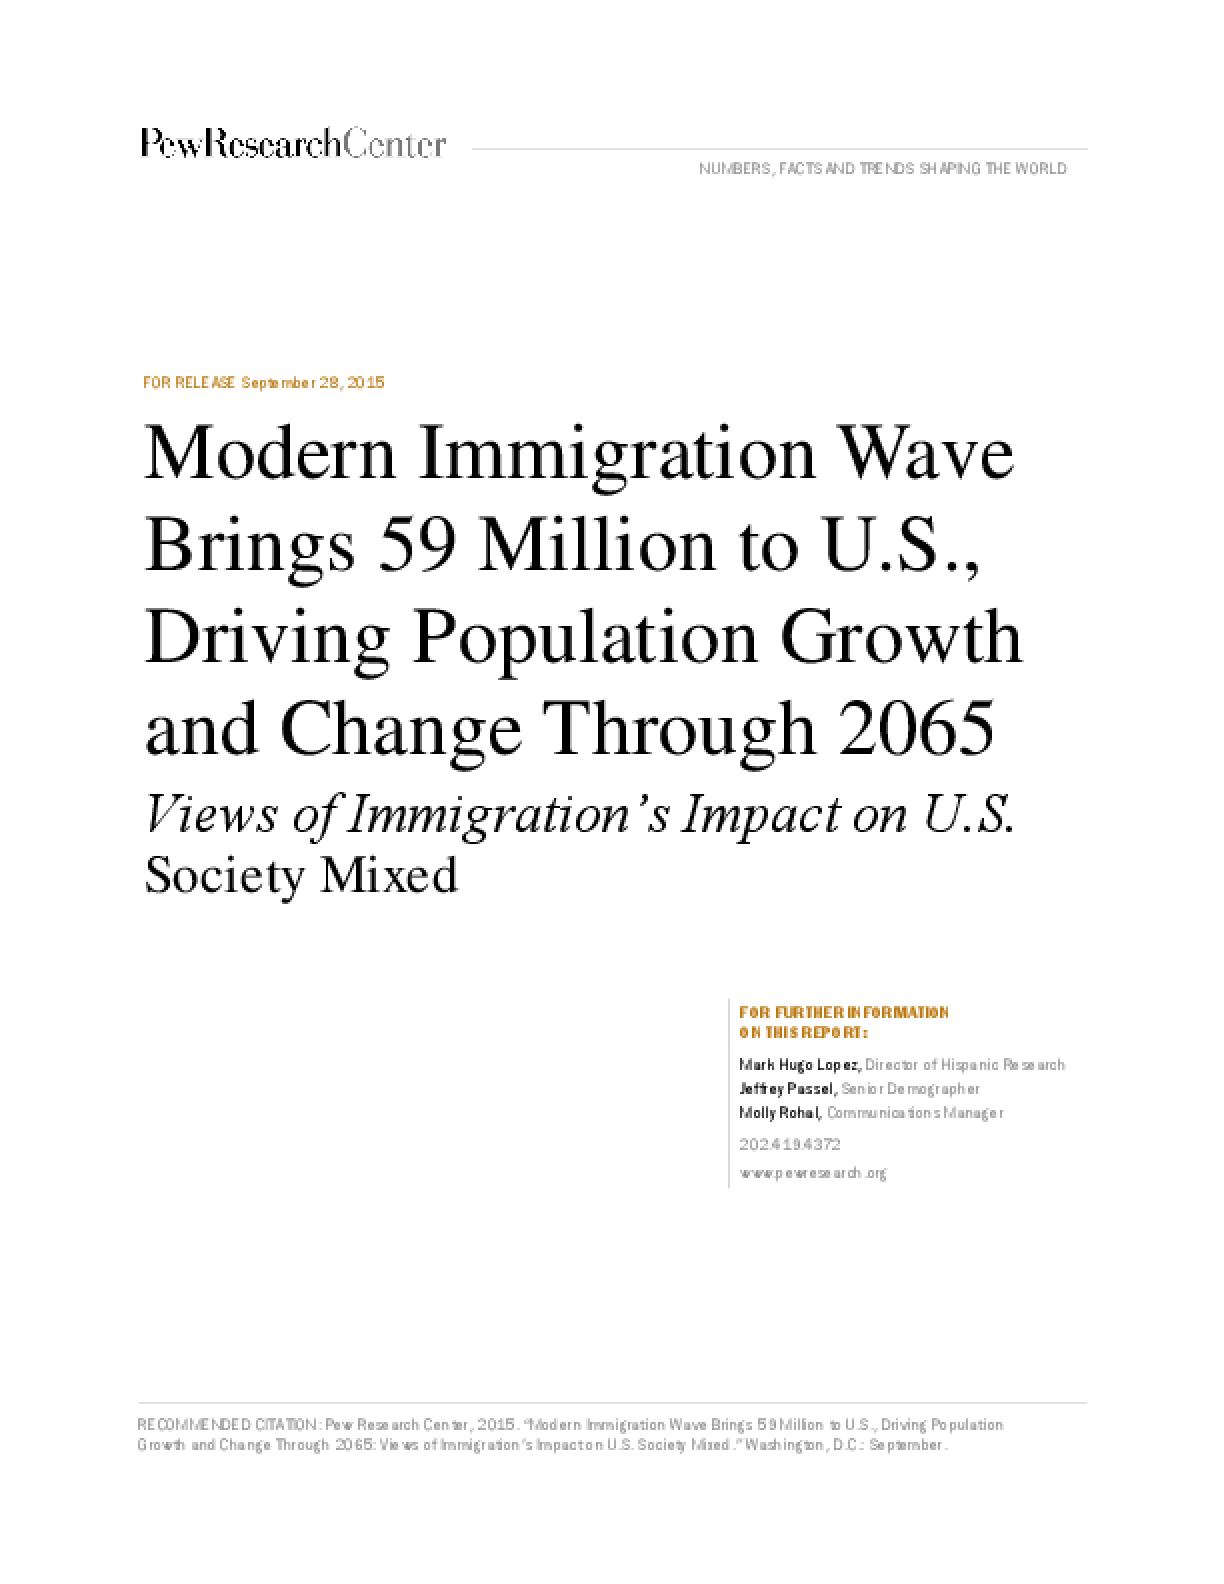 Modern Immigration Wave Brings 59 Million to U.S., Driving Population Growth and Change Through 2065: Views of Immigration's Impact on U.S. Society Mixed